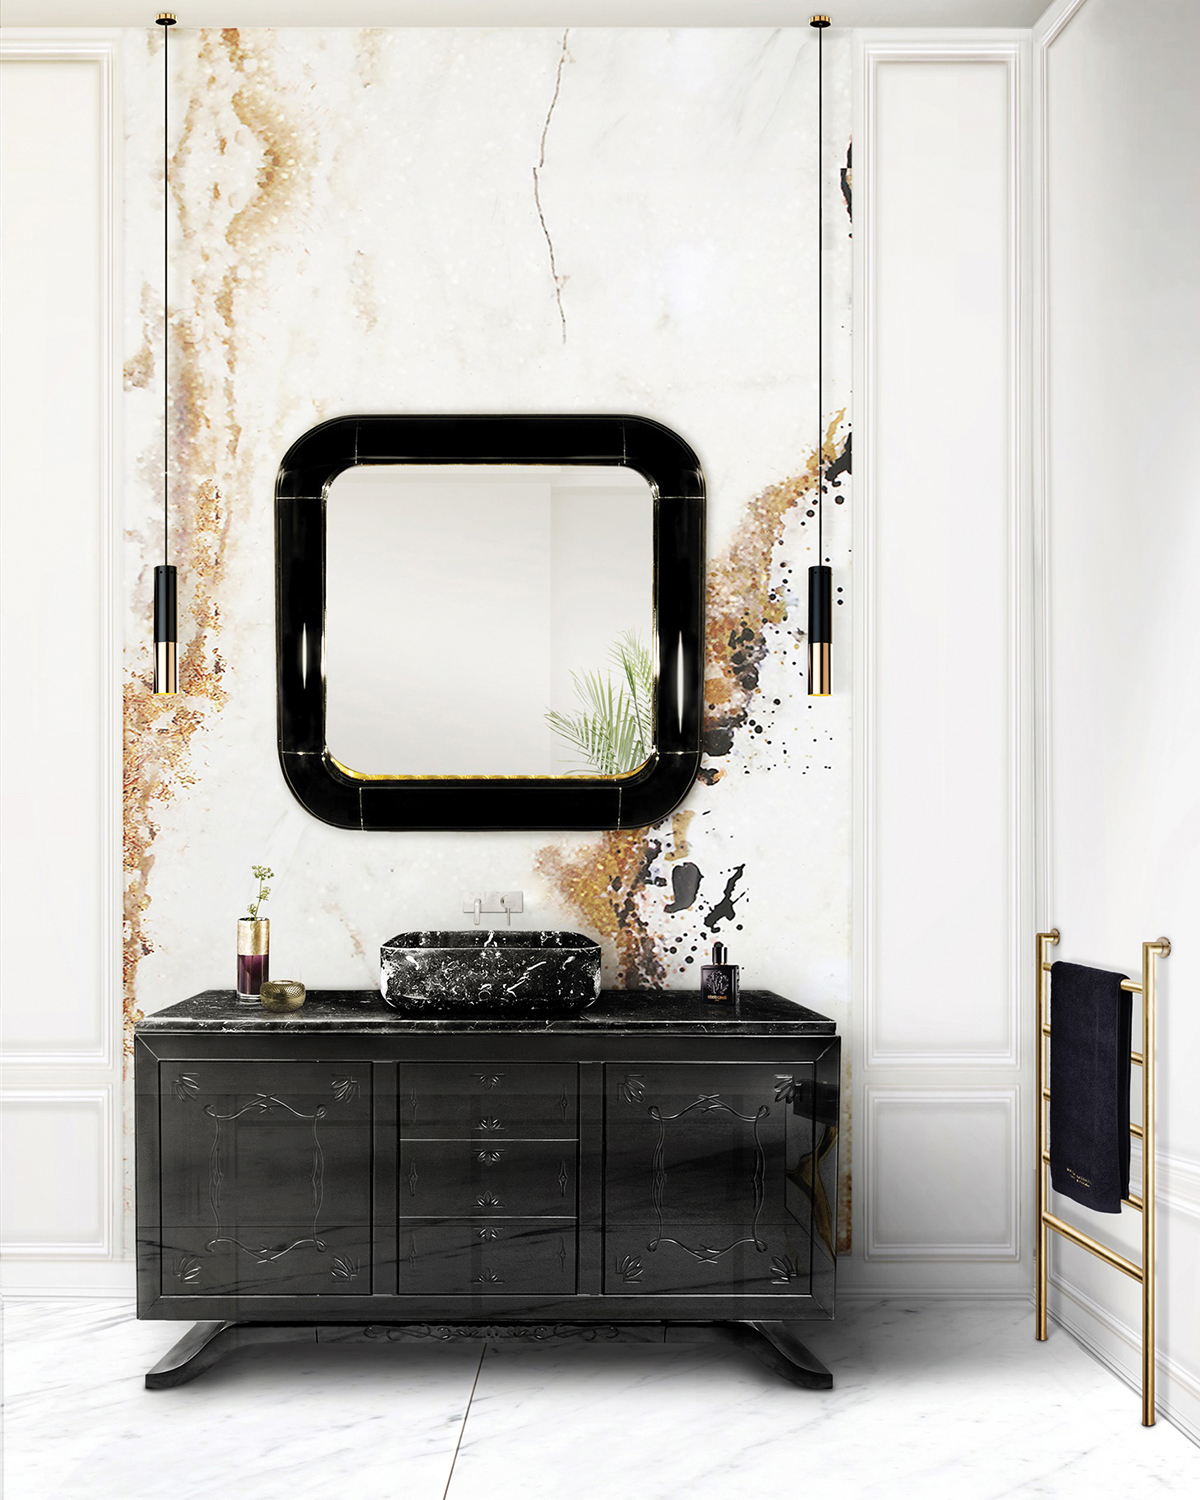 Elegant Washbasins - Metropolitan elegant washbasins 15 Elegant Washbasins to Look Out for in 2021 Metropolitan by Maison Valentina